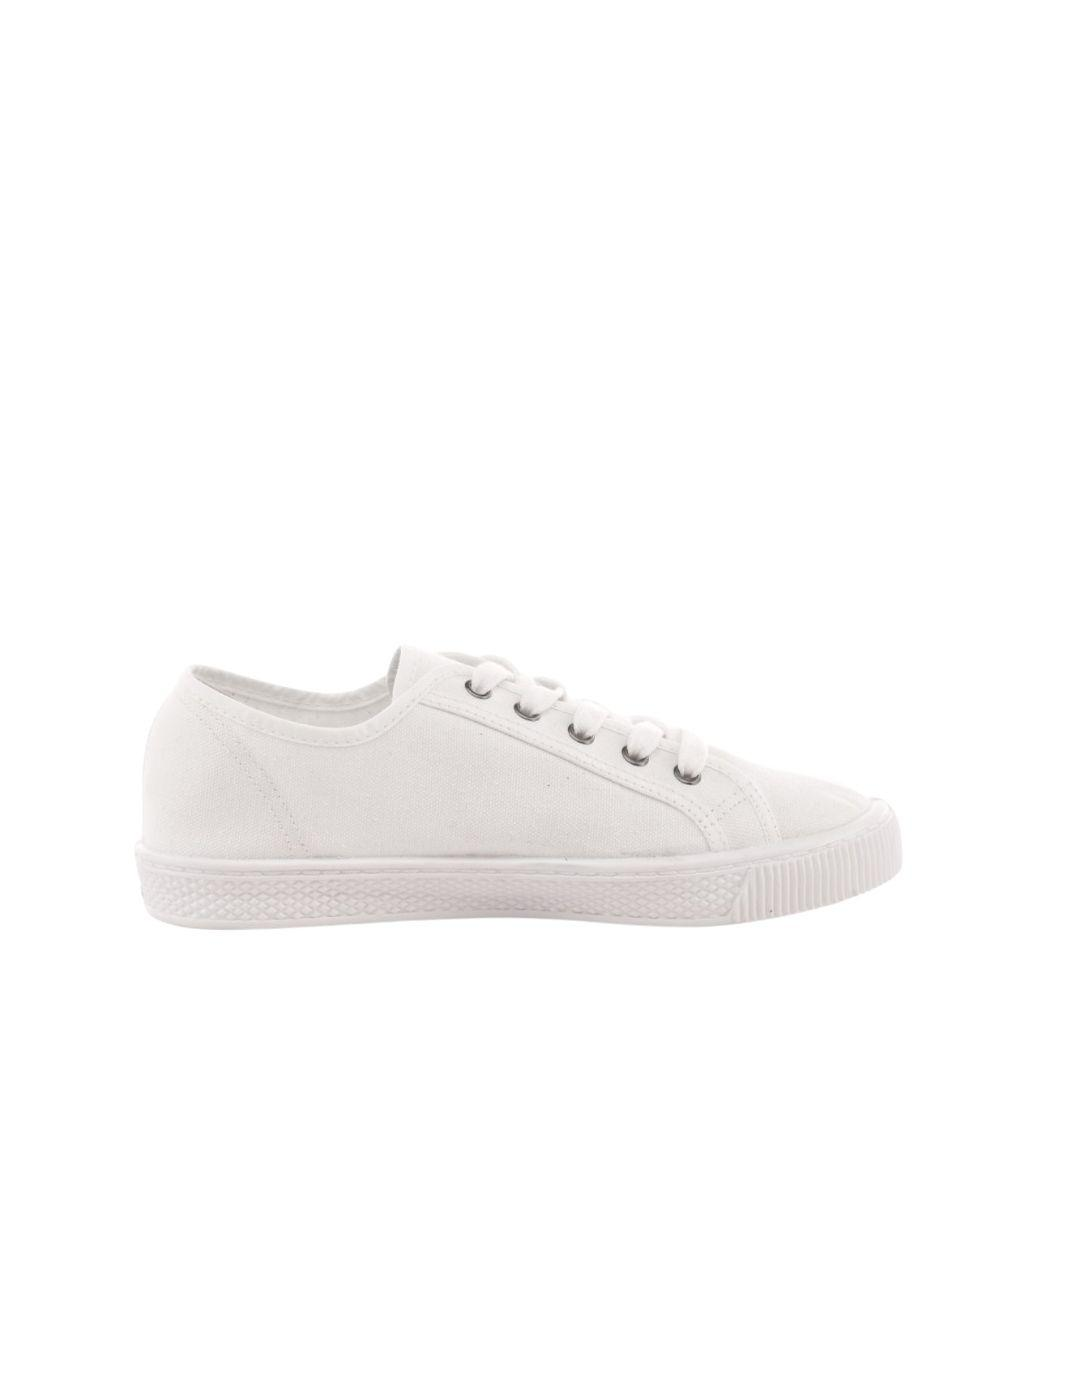 Zapatillas Levis Malibu Beach Sneakers Brilliant White